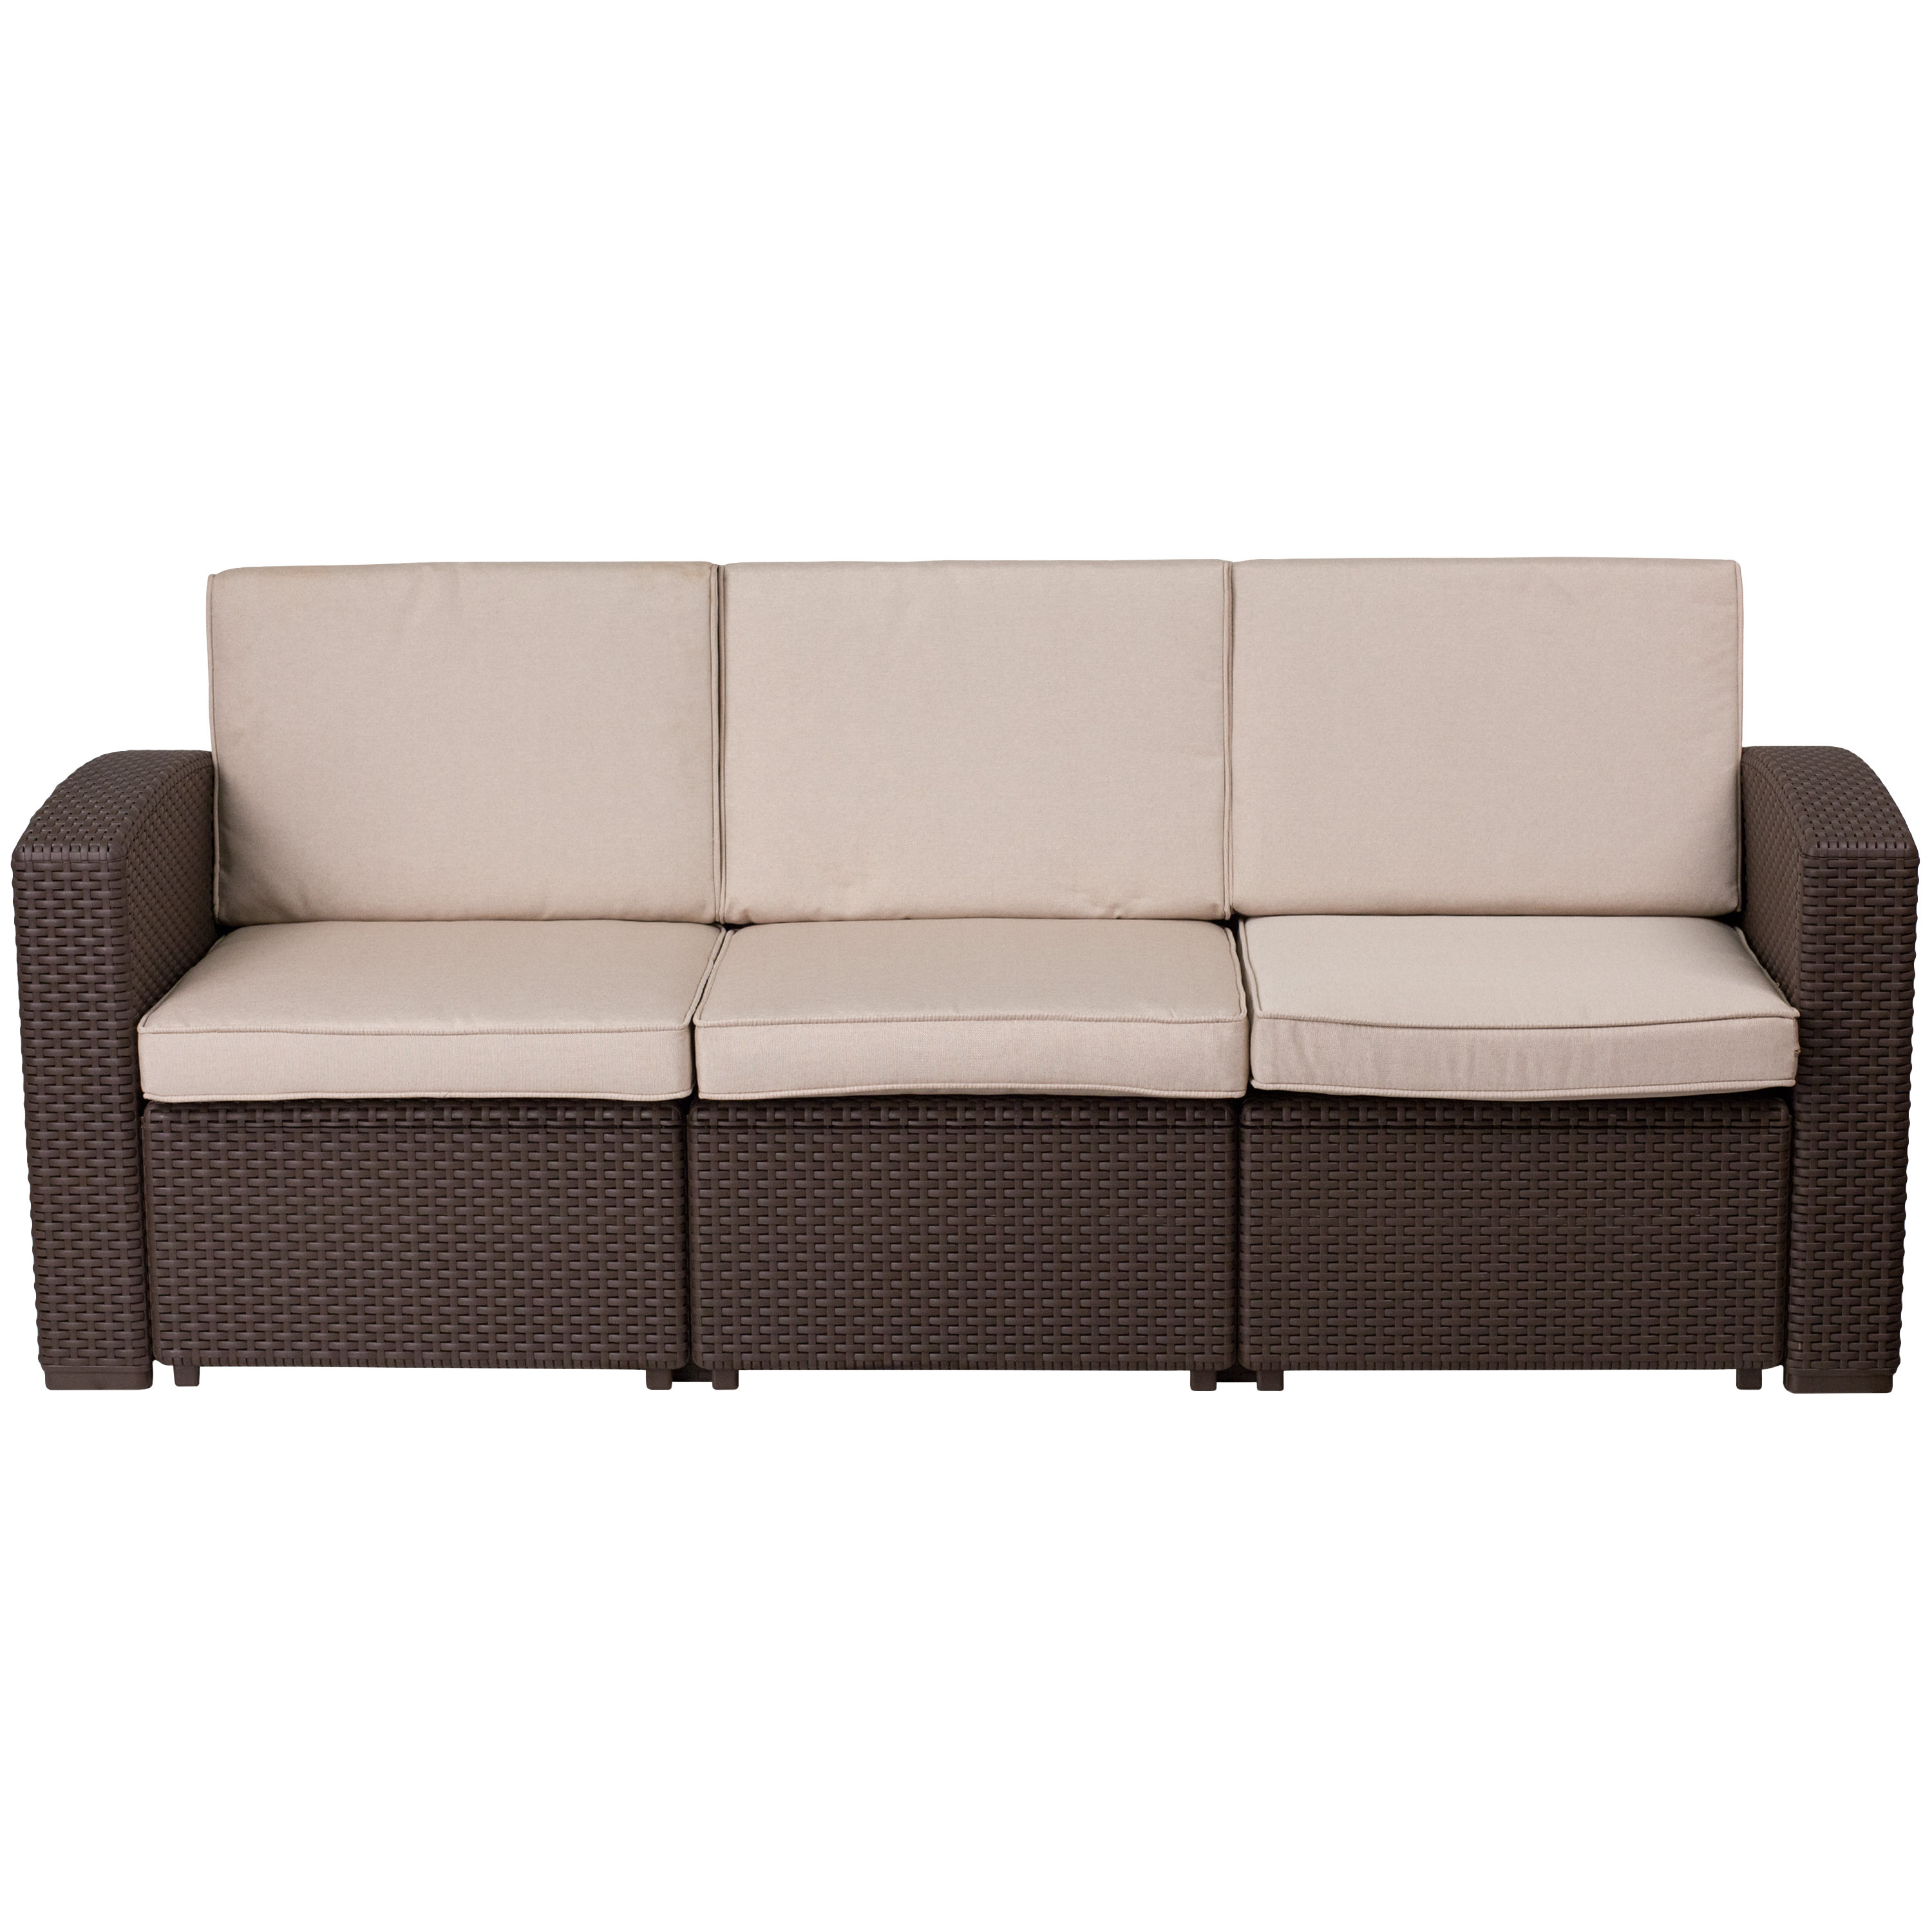 Most Recent Clifford Patio Sofa With Cushions Inside Stockwell Patio Sofas With Cushions (View 7 of 20)